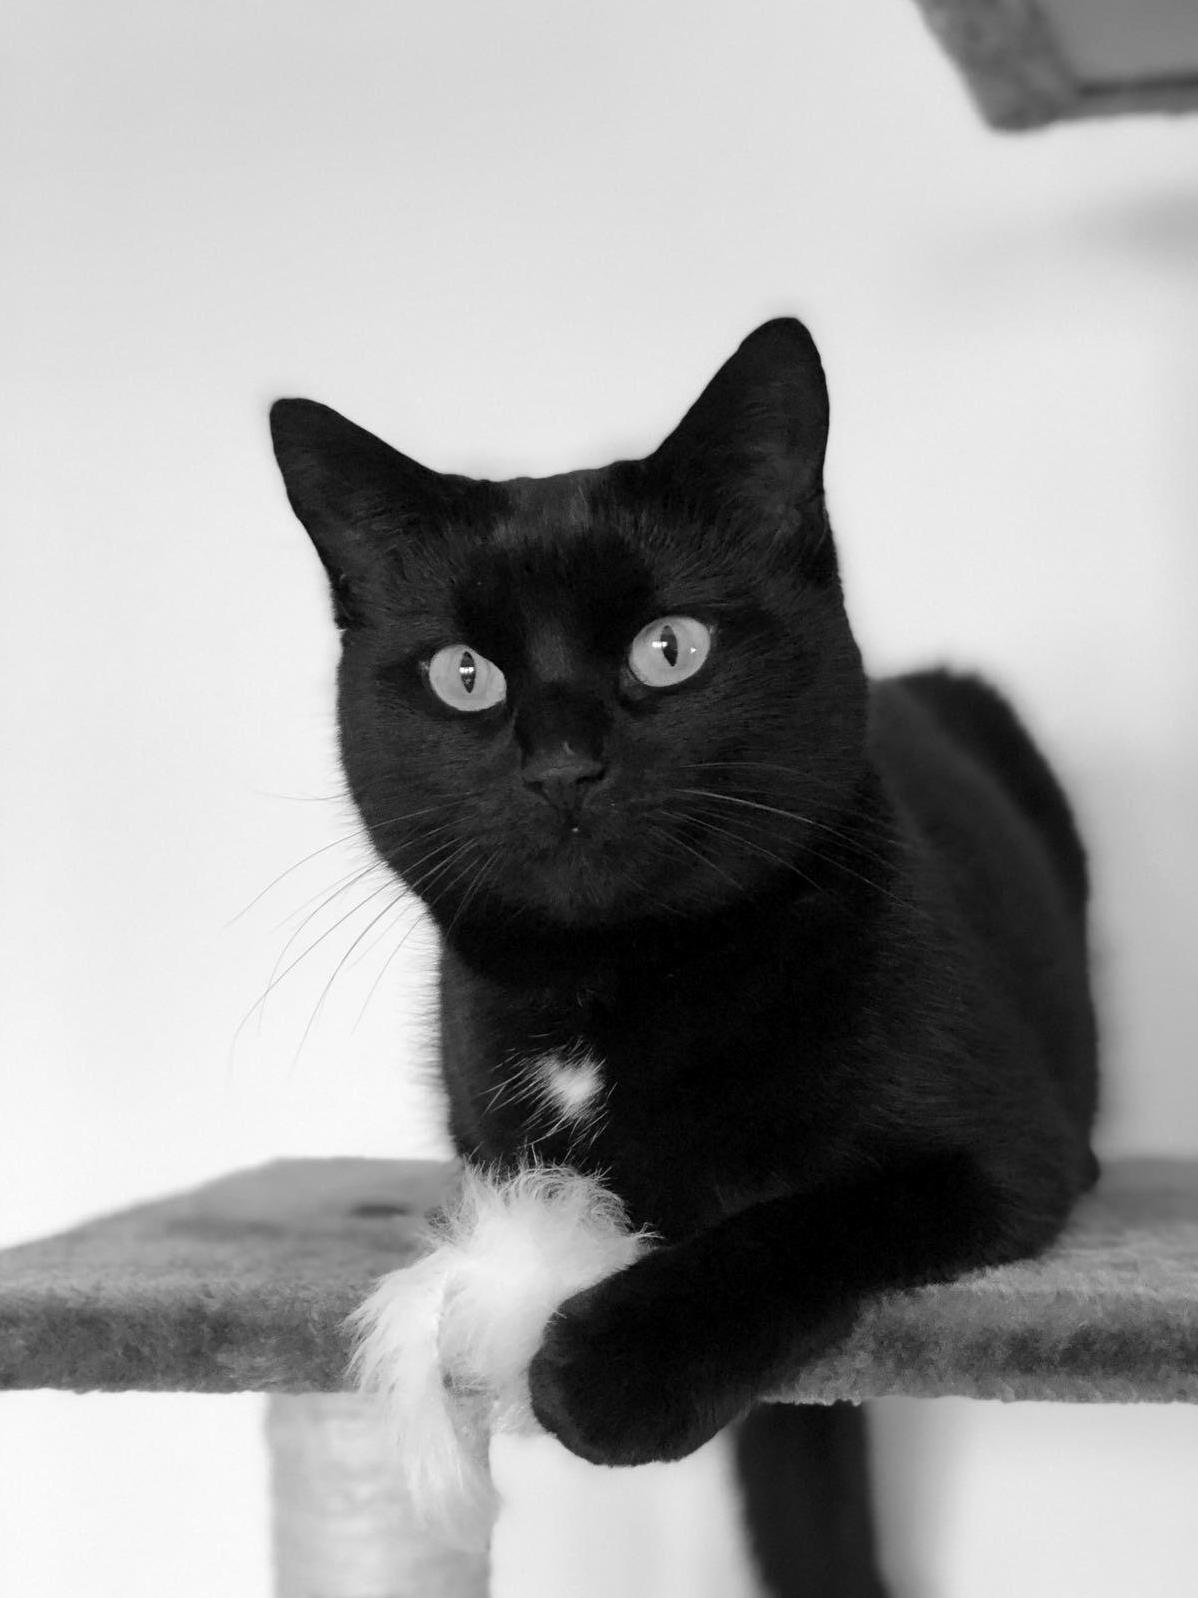 Pretty sure my cat thinks she is a model…